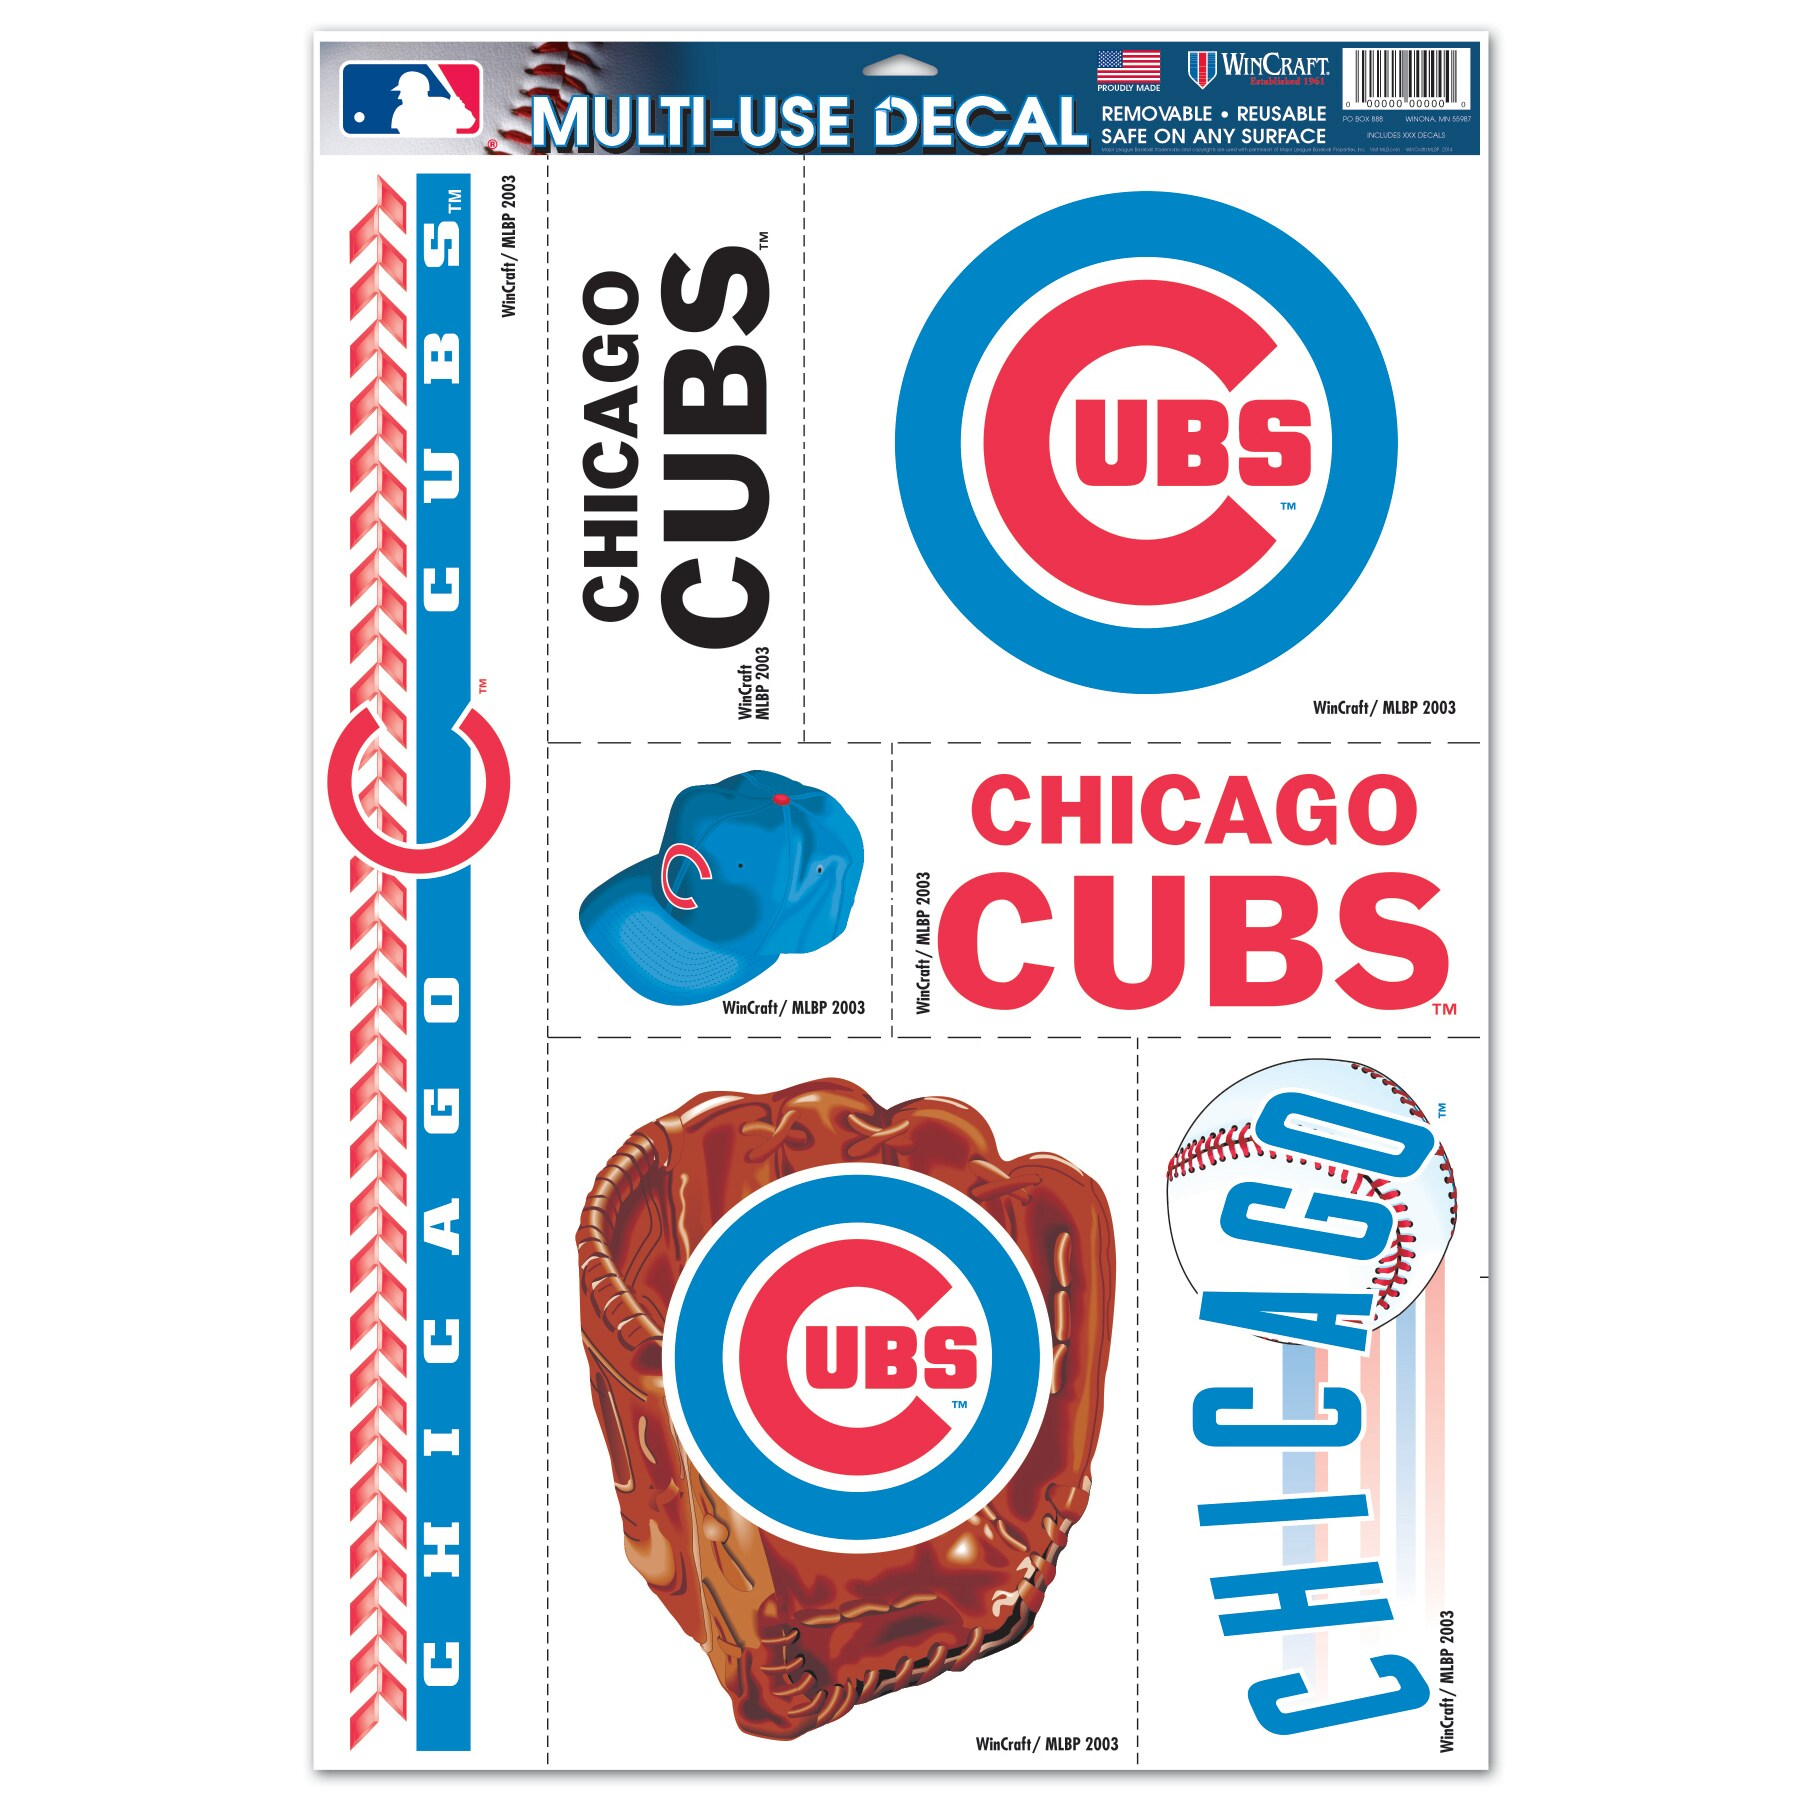 """Chicago Cubs WinCraft 7-Piece 11"""" x 17"""" Multi-Use Decal Sheet"""